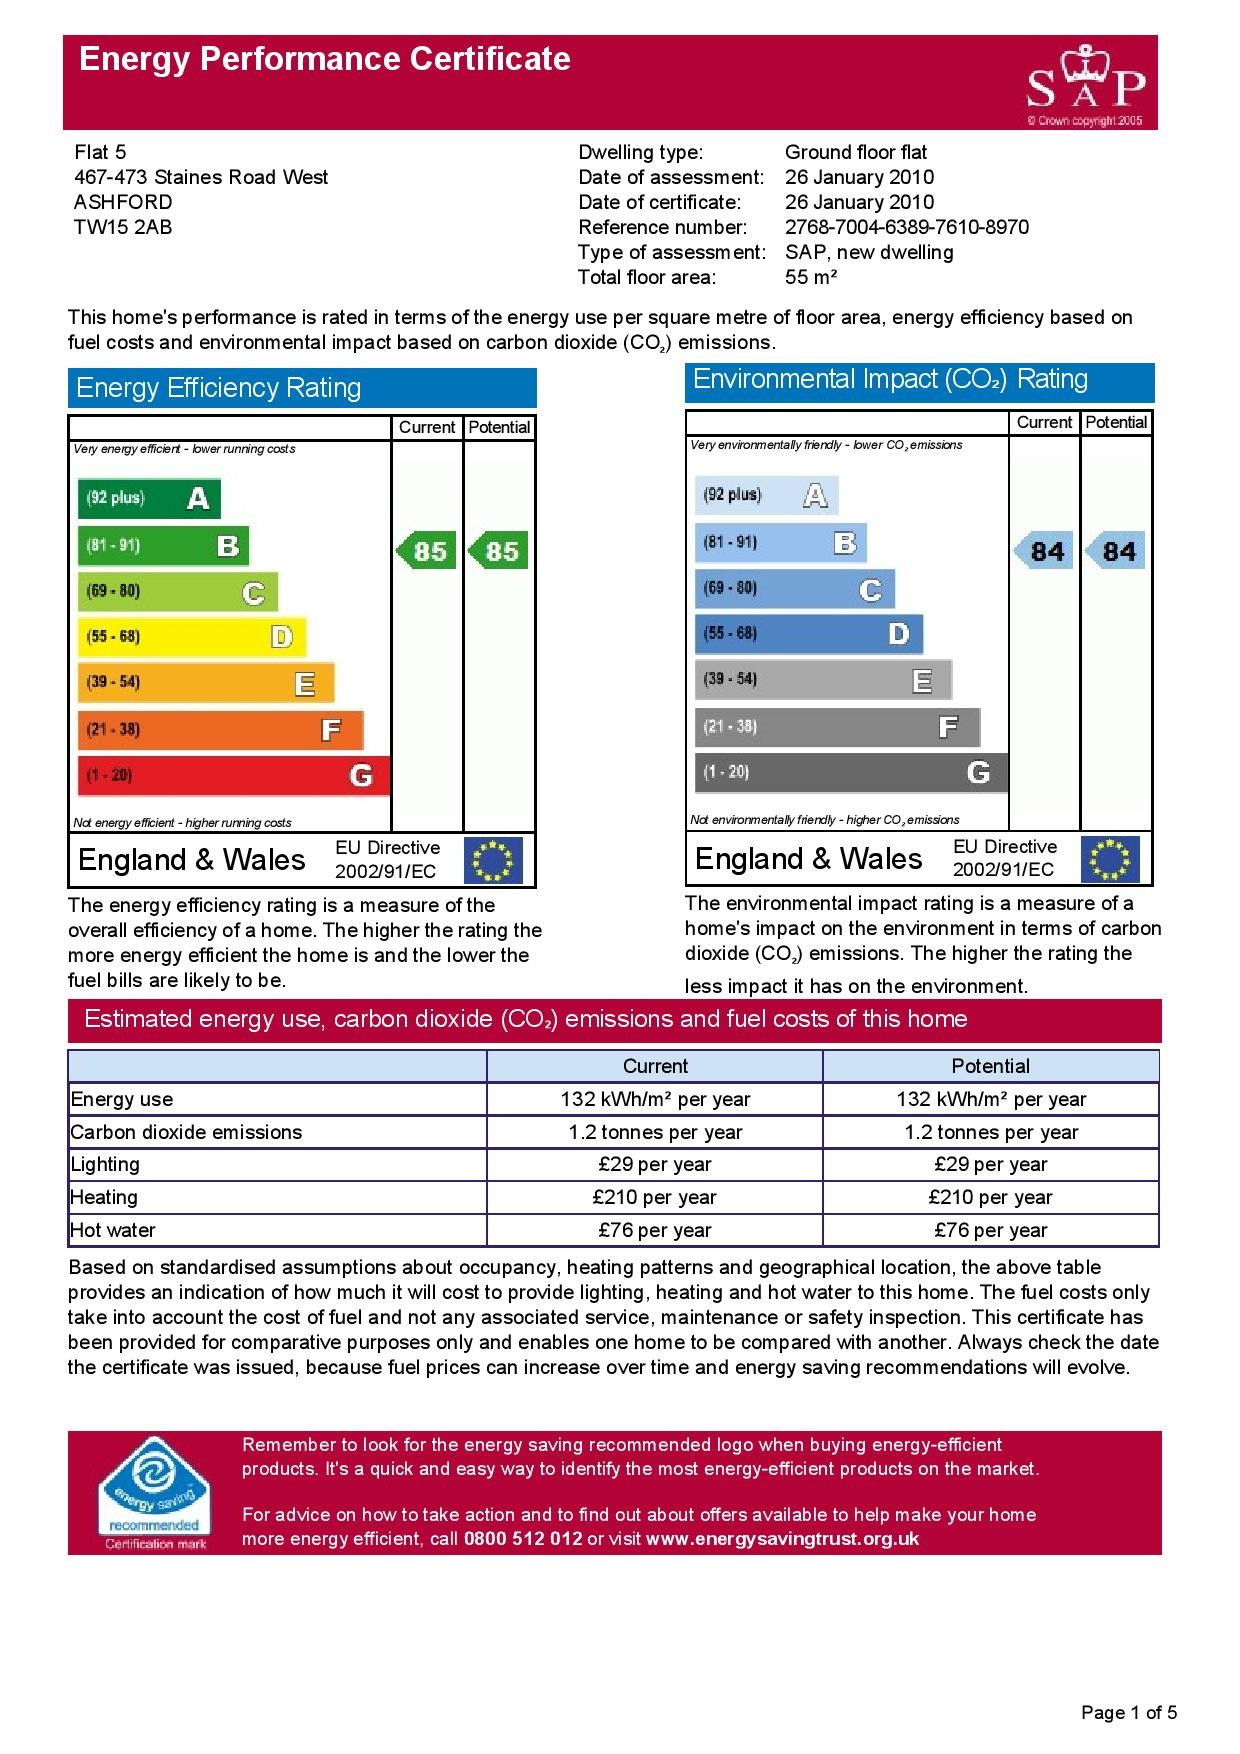 EPC Graph for 5 Newman Court, 467-473 Staines Road West, Ashford, Middlesex TW15 2AB